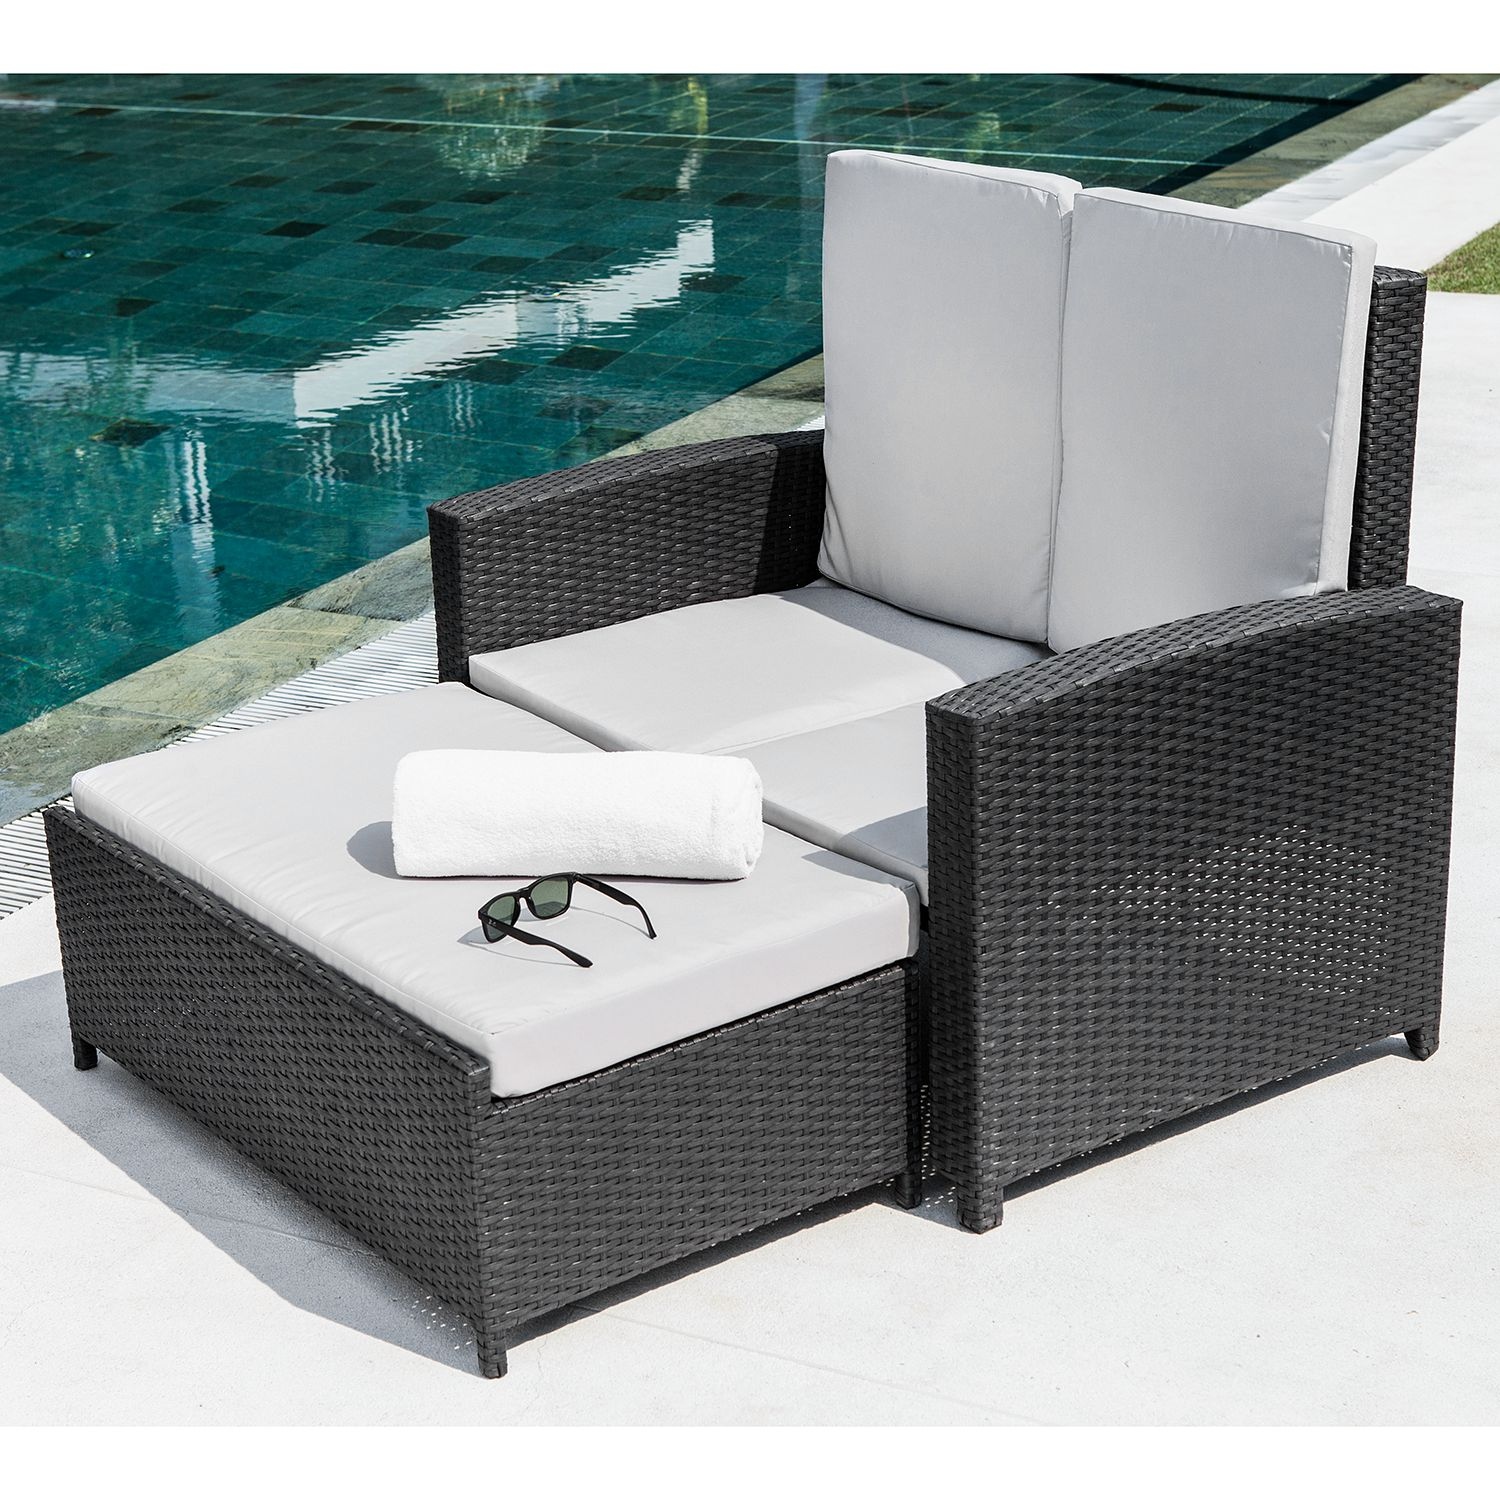 12 sparen gartensofa paradise lounge inkl hocker nur 349 99 cherry m bel home24. Black Bedroom Furniture Sets. Home Design Ideas